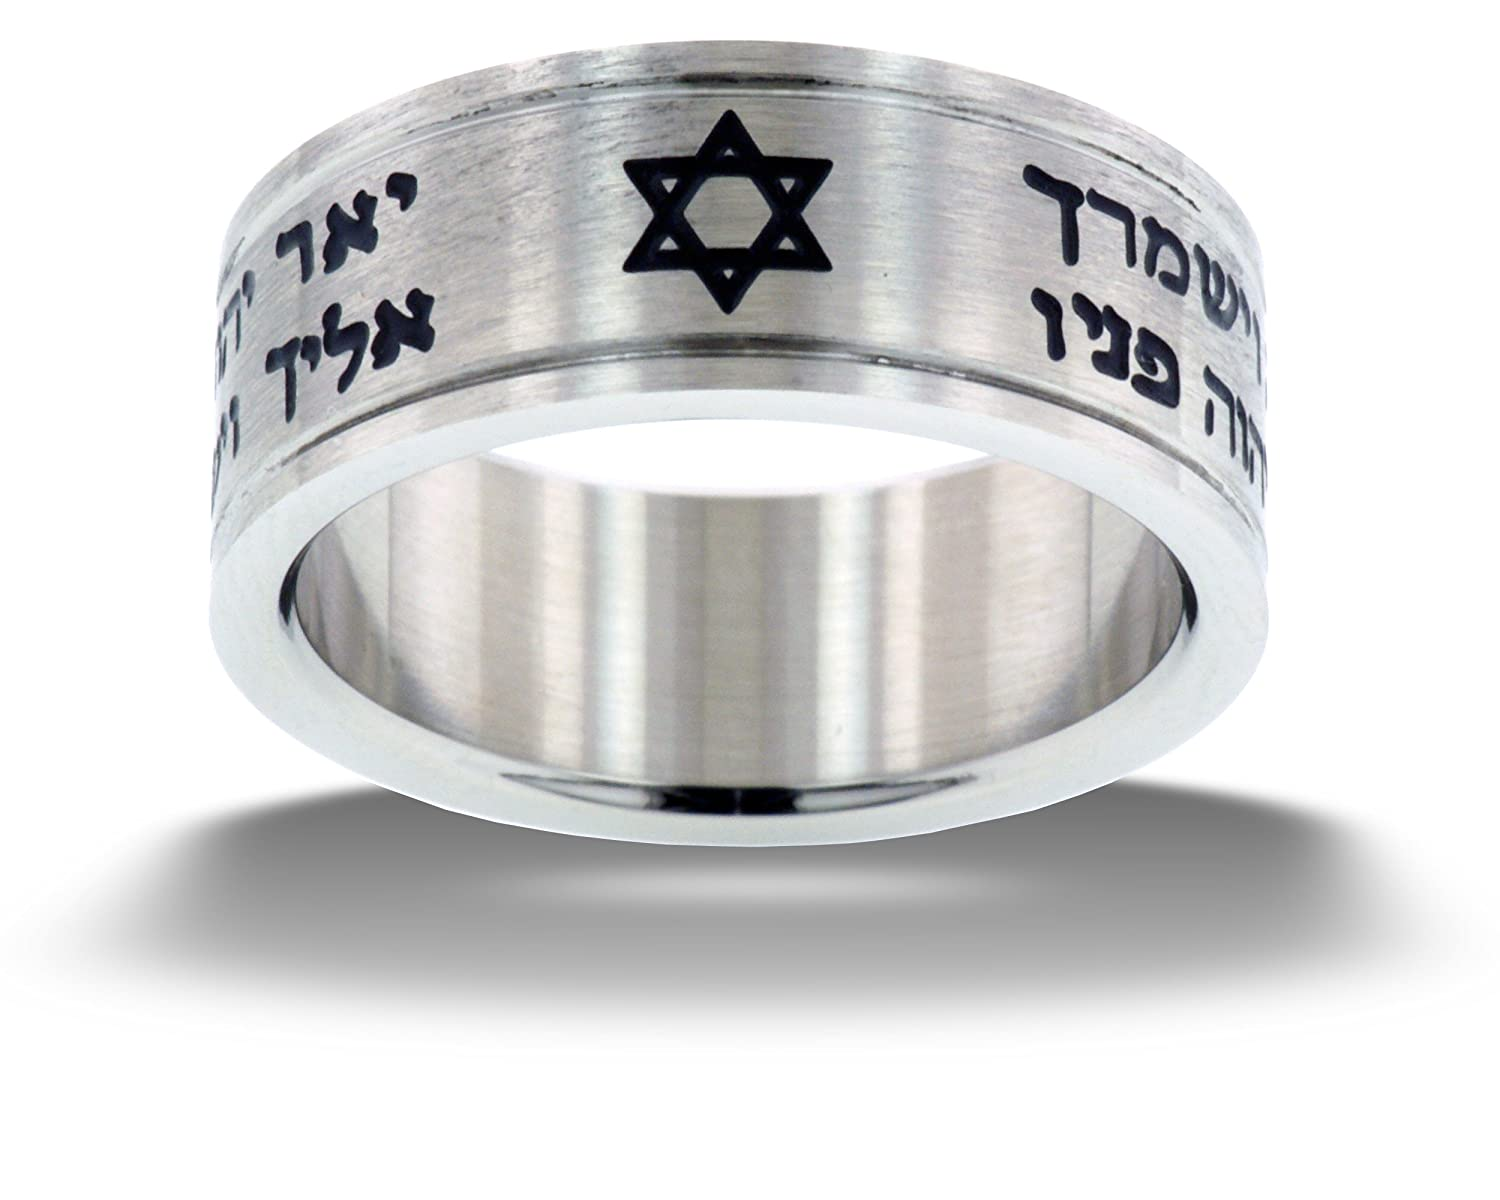 Amazon.com: Aaronic Blessing Ring: Jewelry